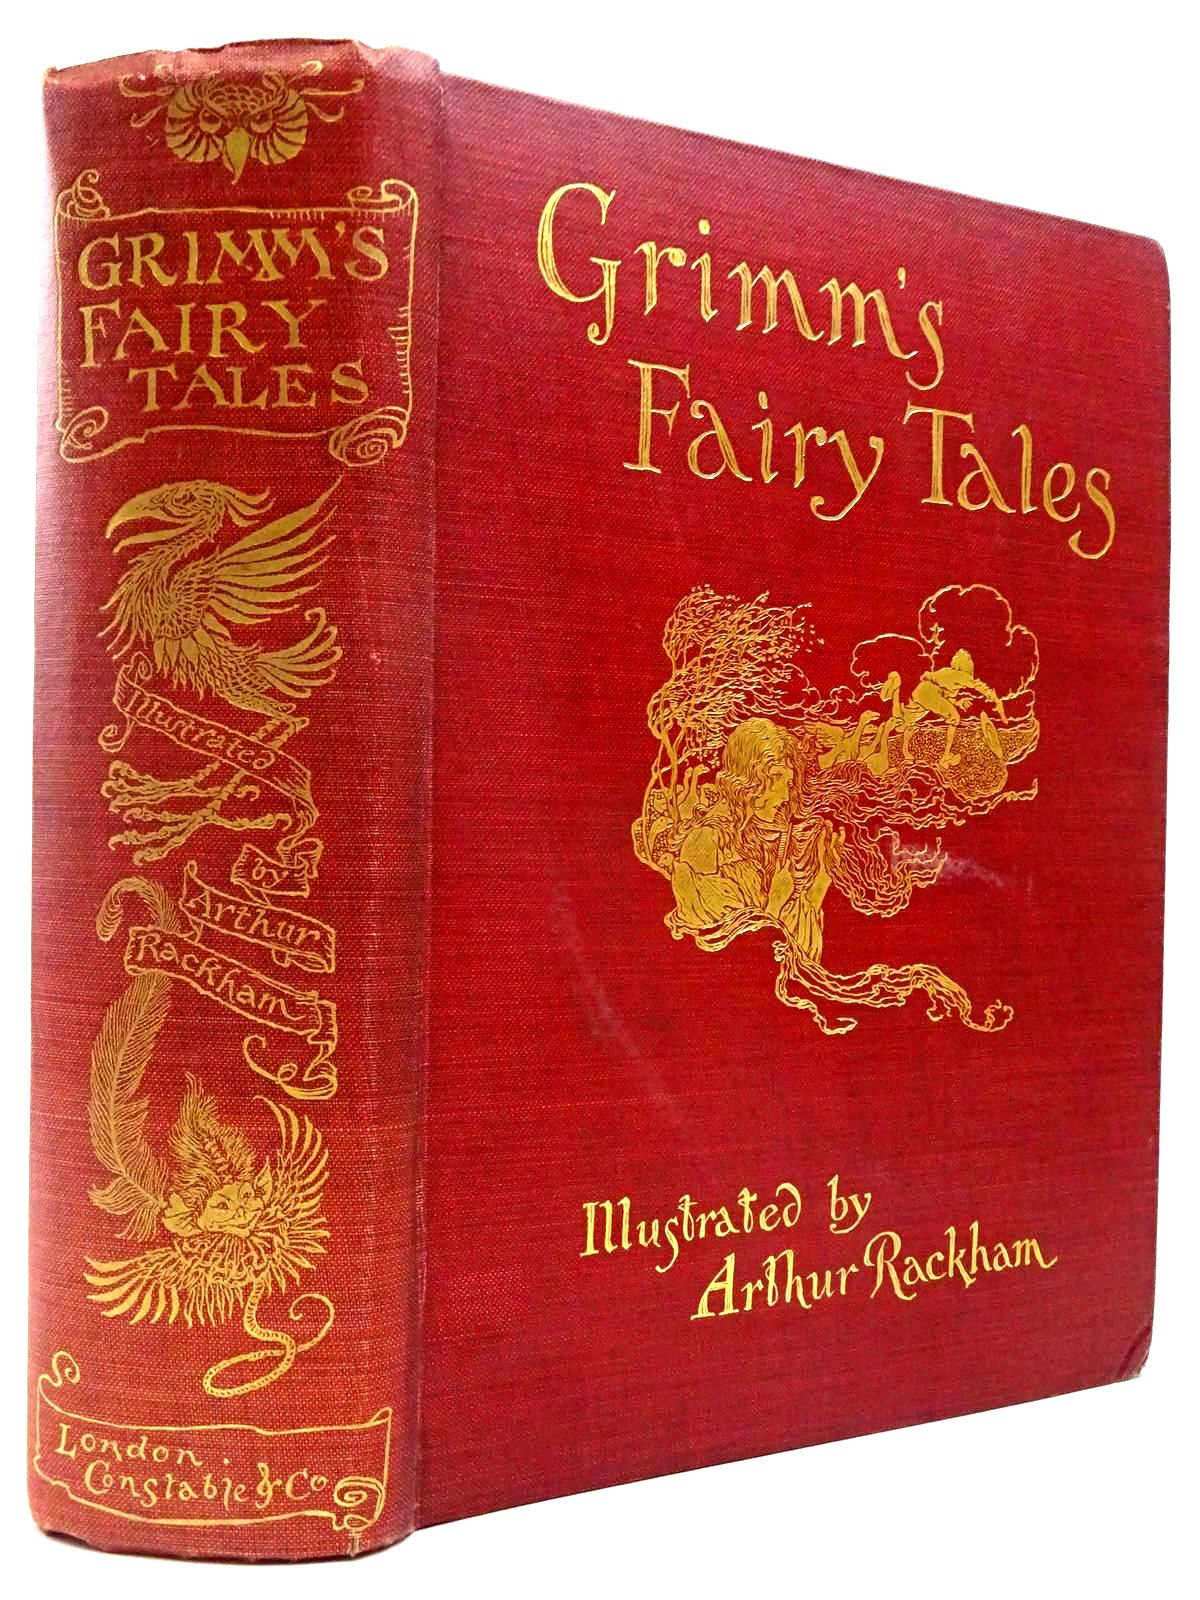 Photo of THE FAIRY TALES OF THE BROTHERS GRIMM written by Grimm, Brothers illustrated by Rackham, Arthur published by Constable and Company Ltd. (STOCK CODE: 2130355)  for sale by Stella & Rose's Books